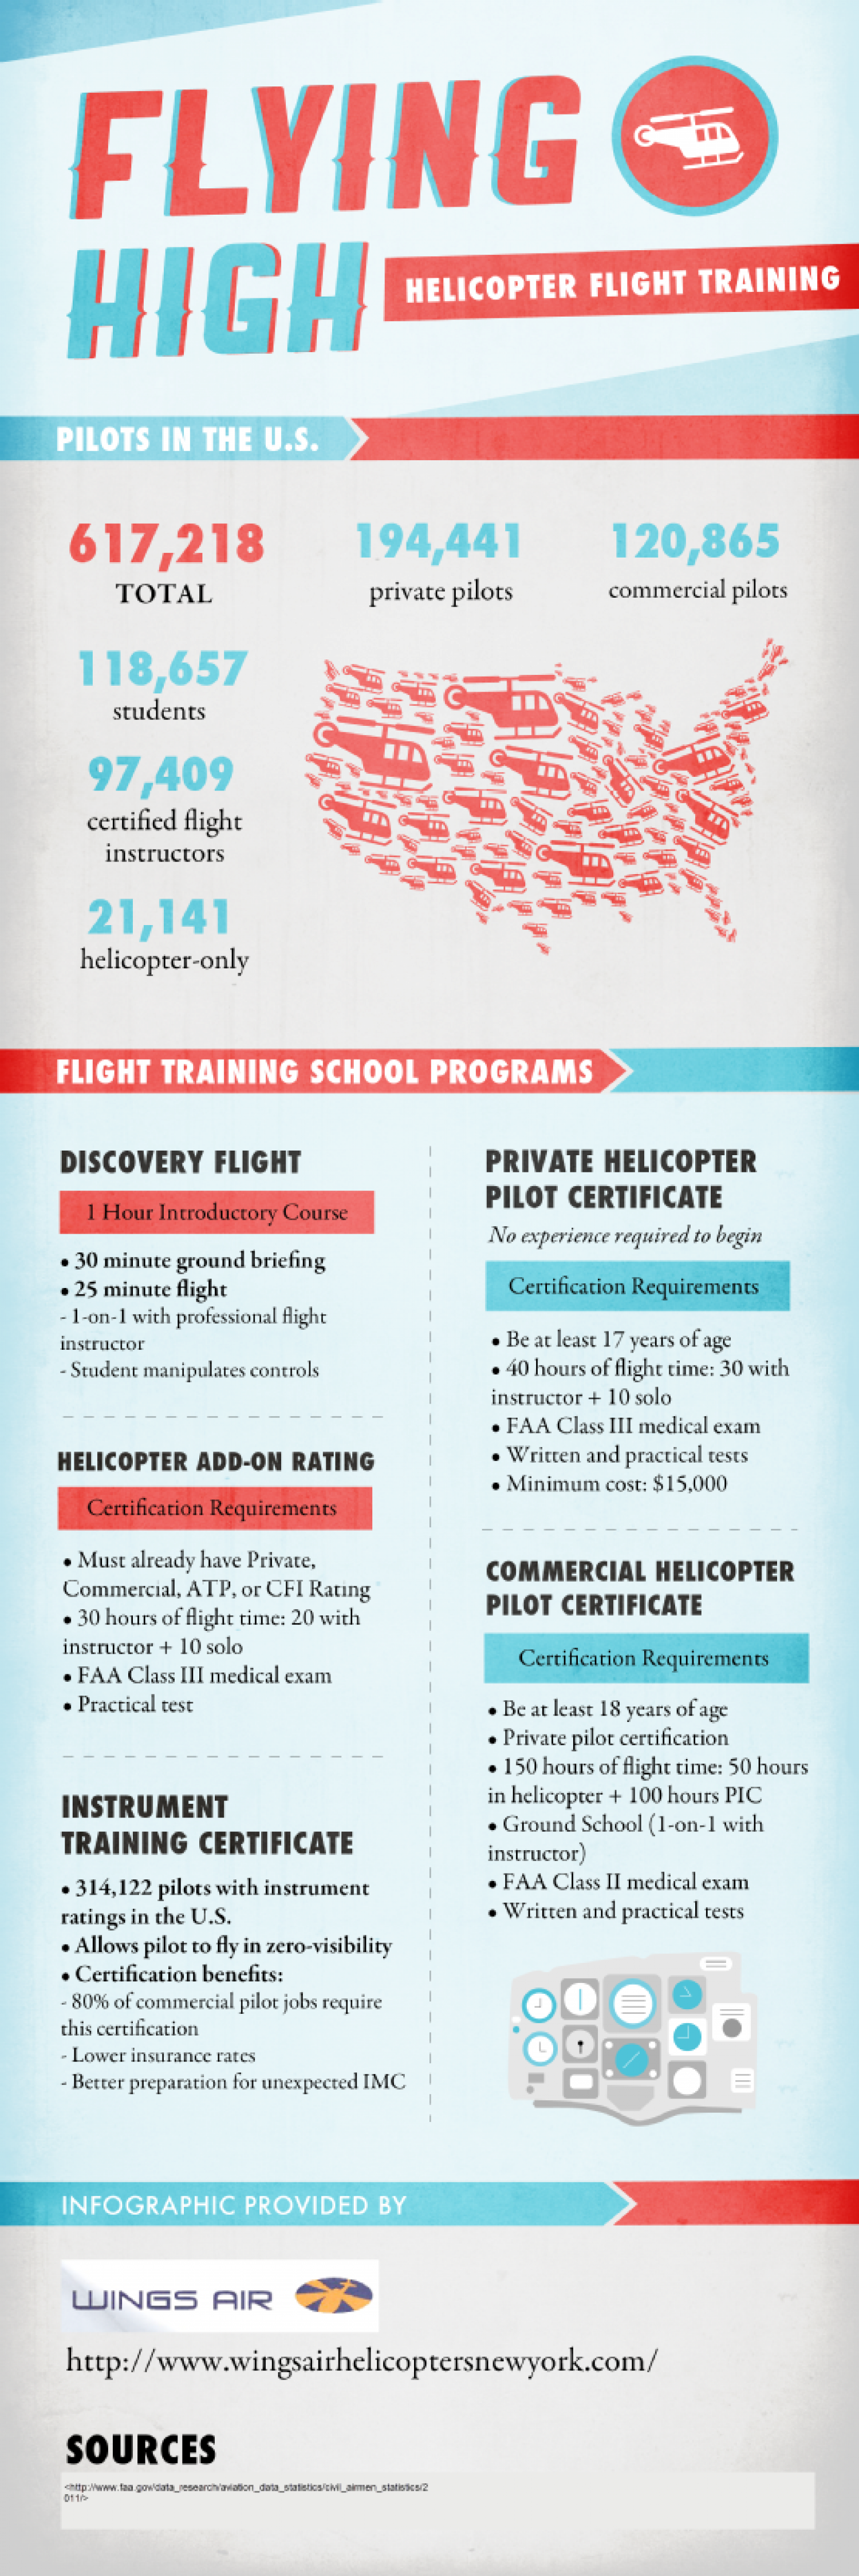 Flying High: Helicopter Flight Training Infographic